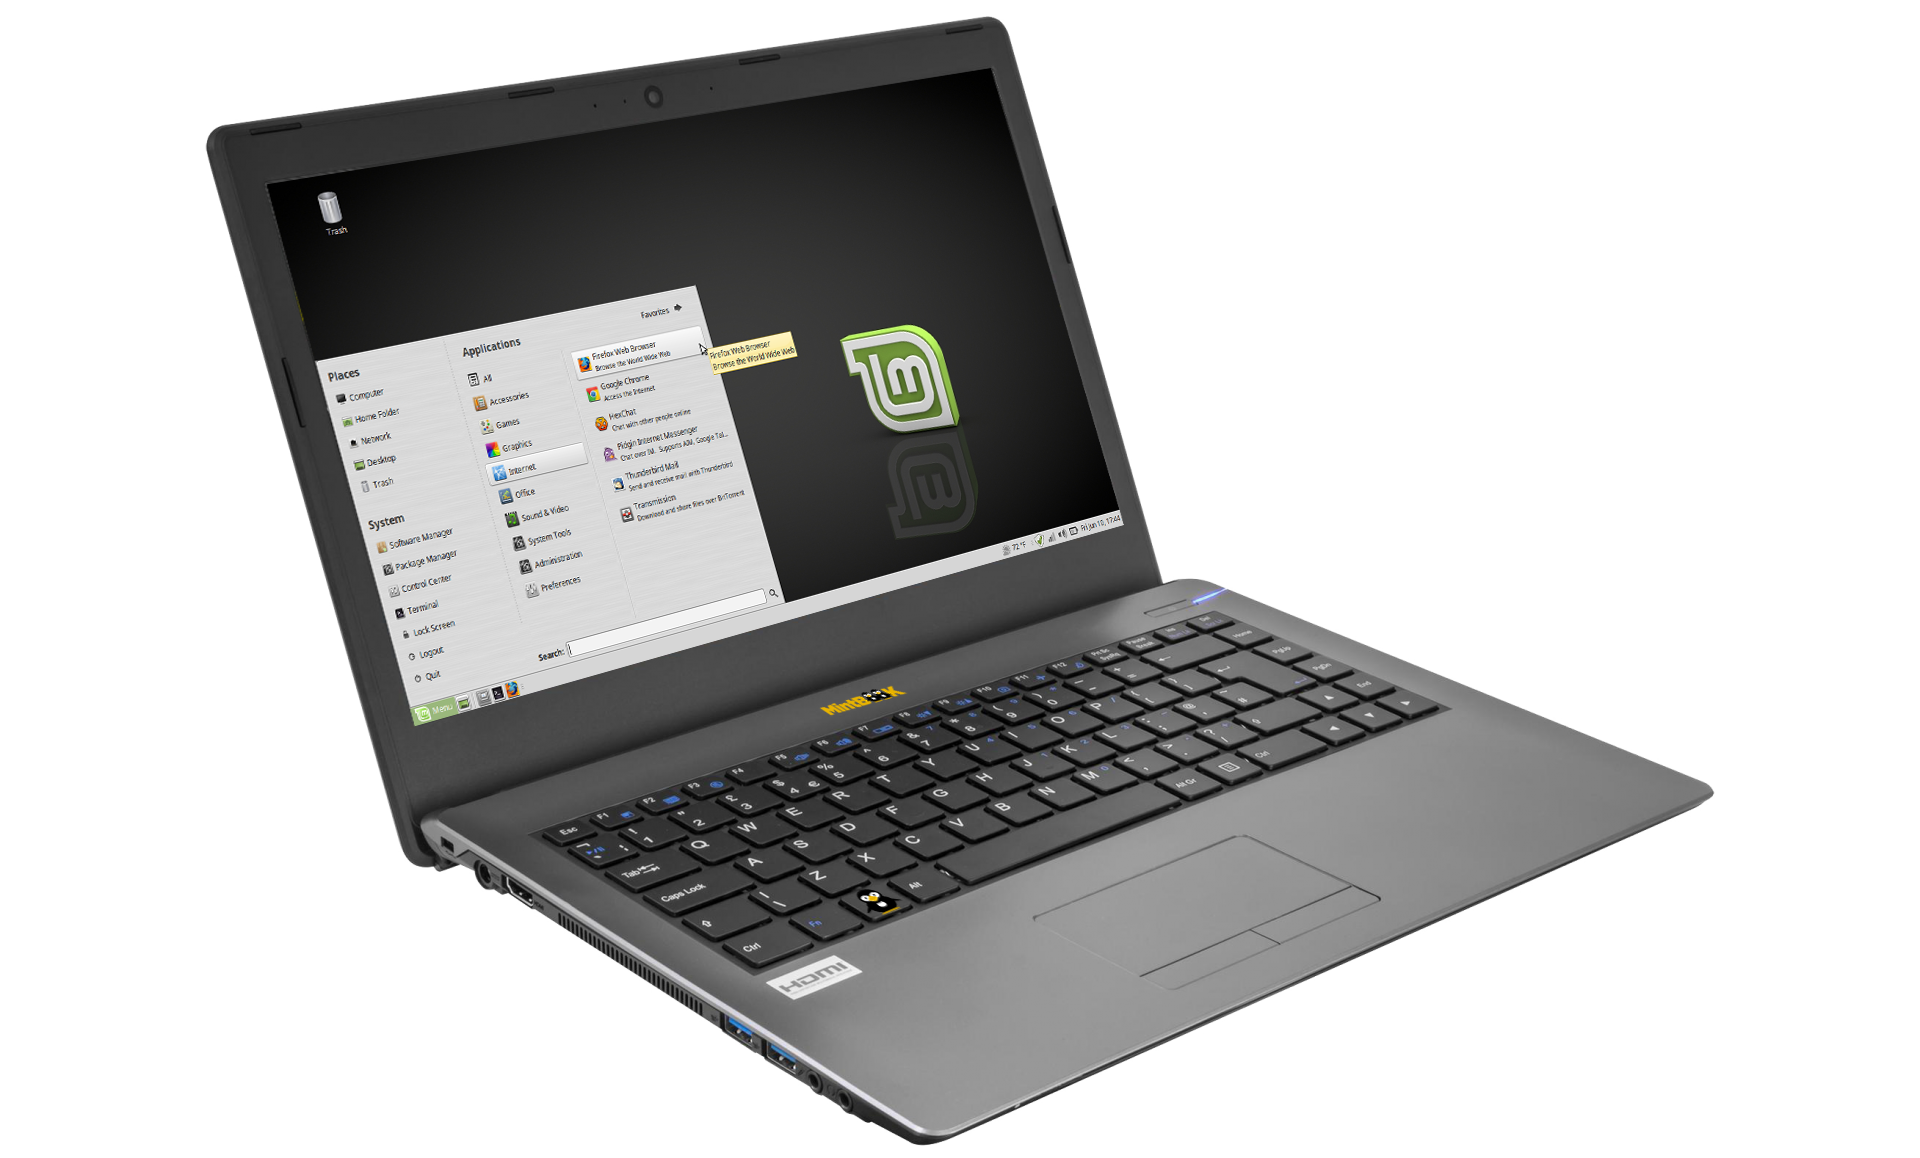 Linux-Mint NoteBook 14